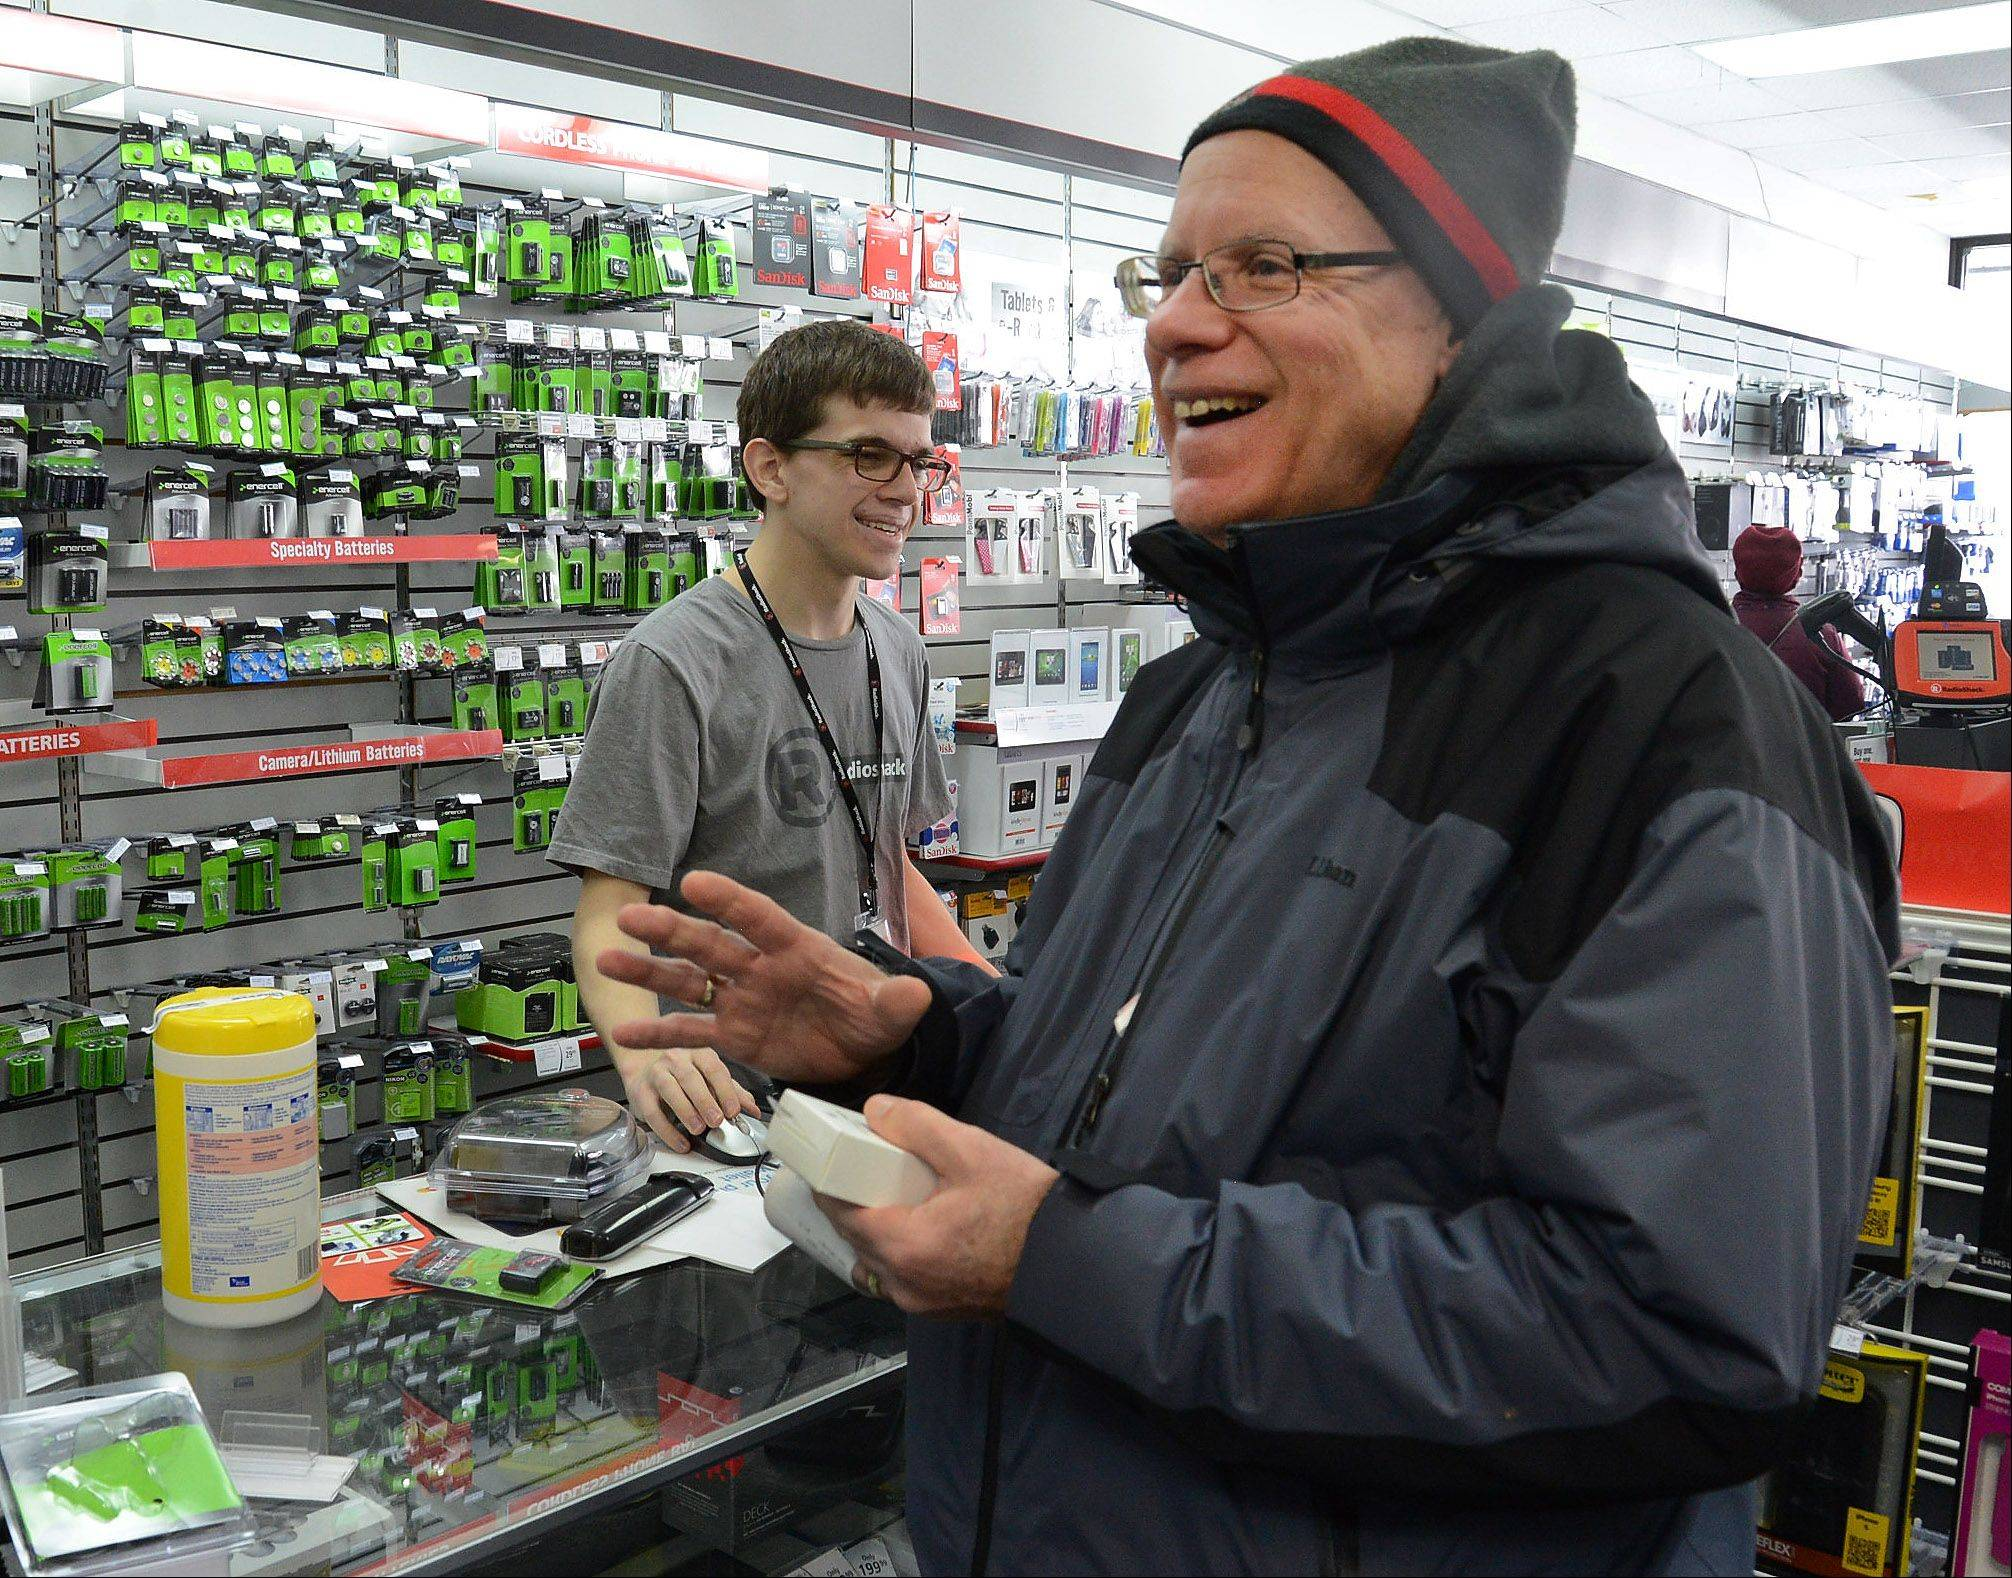 Roger Kalisiak of Hoffman Estates inquires about the Jabra In-Car Speakerphone at the Arlington Heights Radio Shack. Suburban electronics and telecommunications stores report brisk sales of Bluetooth devices since talking on a cellphone behind the wheel without a hands-free device became illegal in Illinois on New Year's Day.